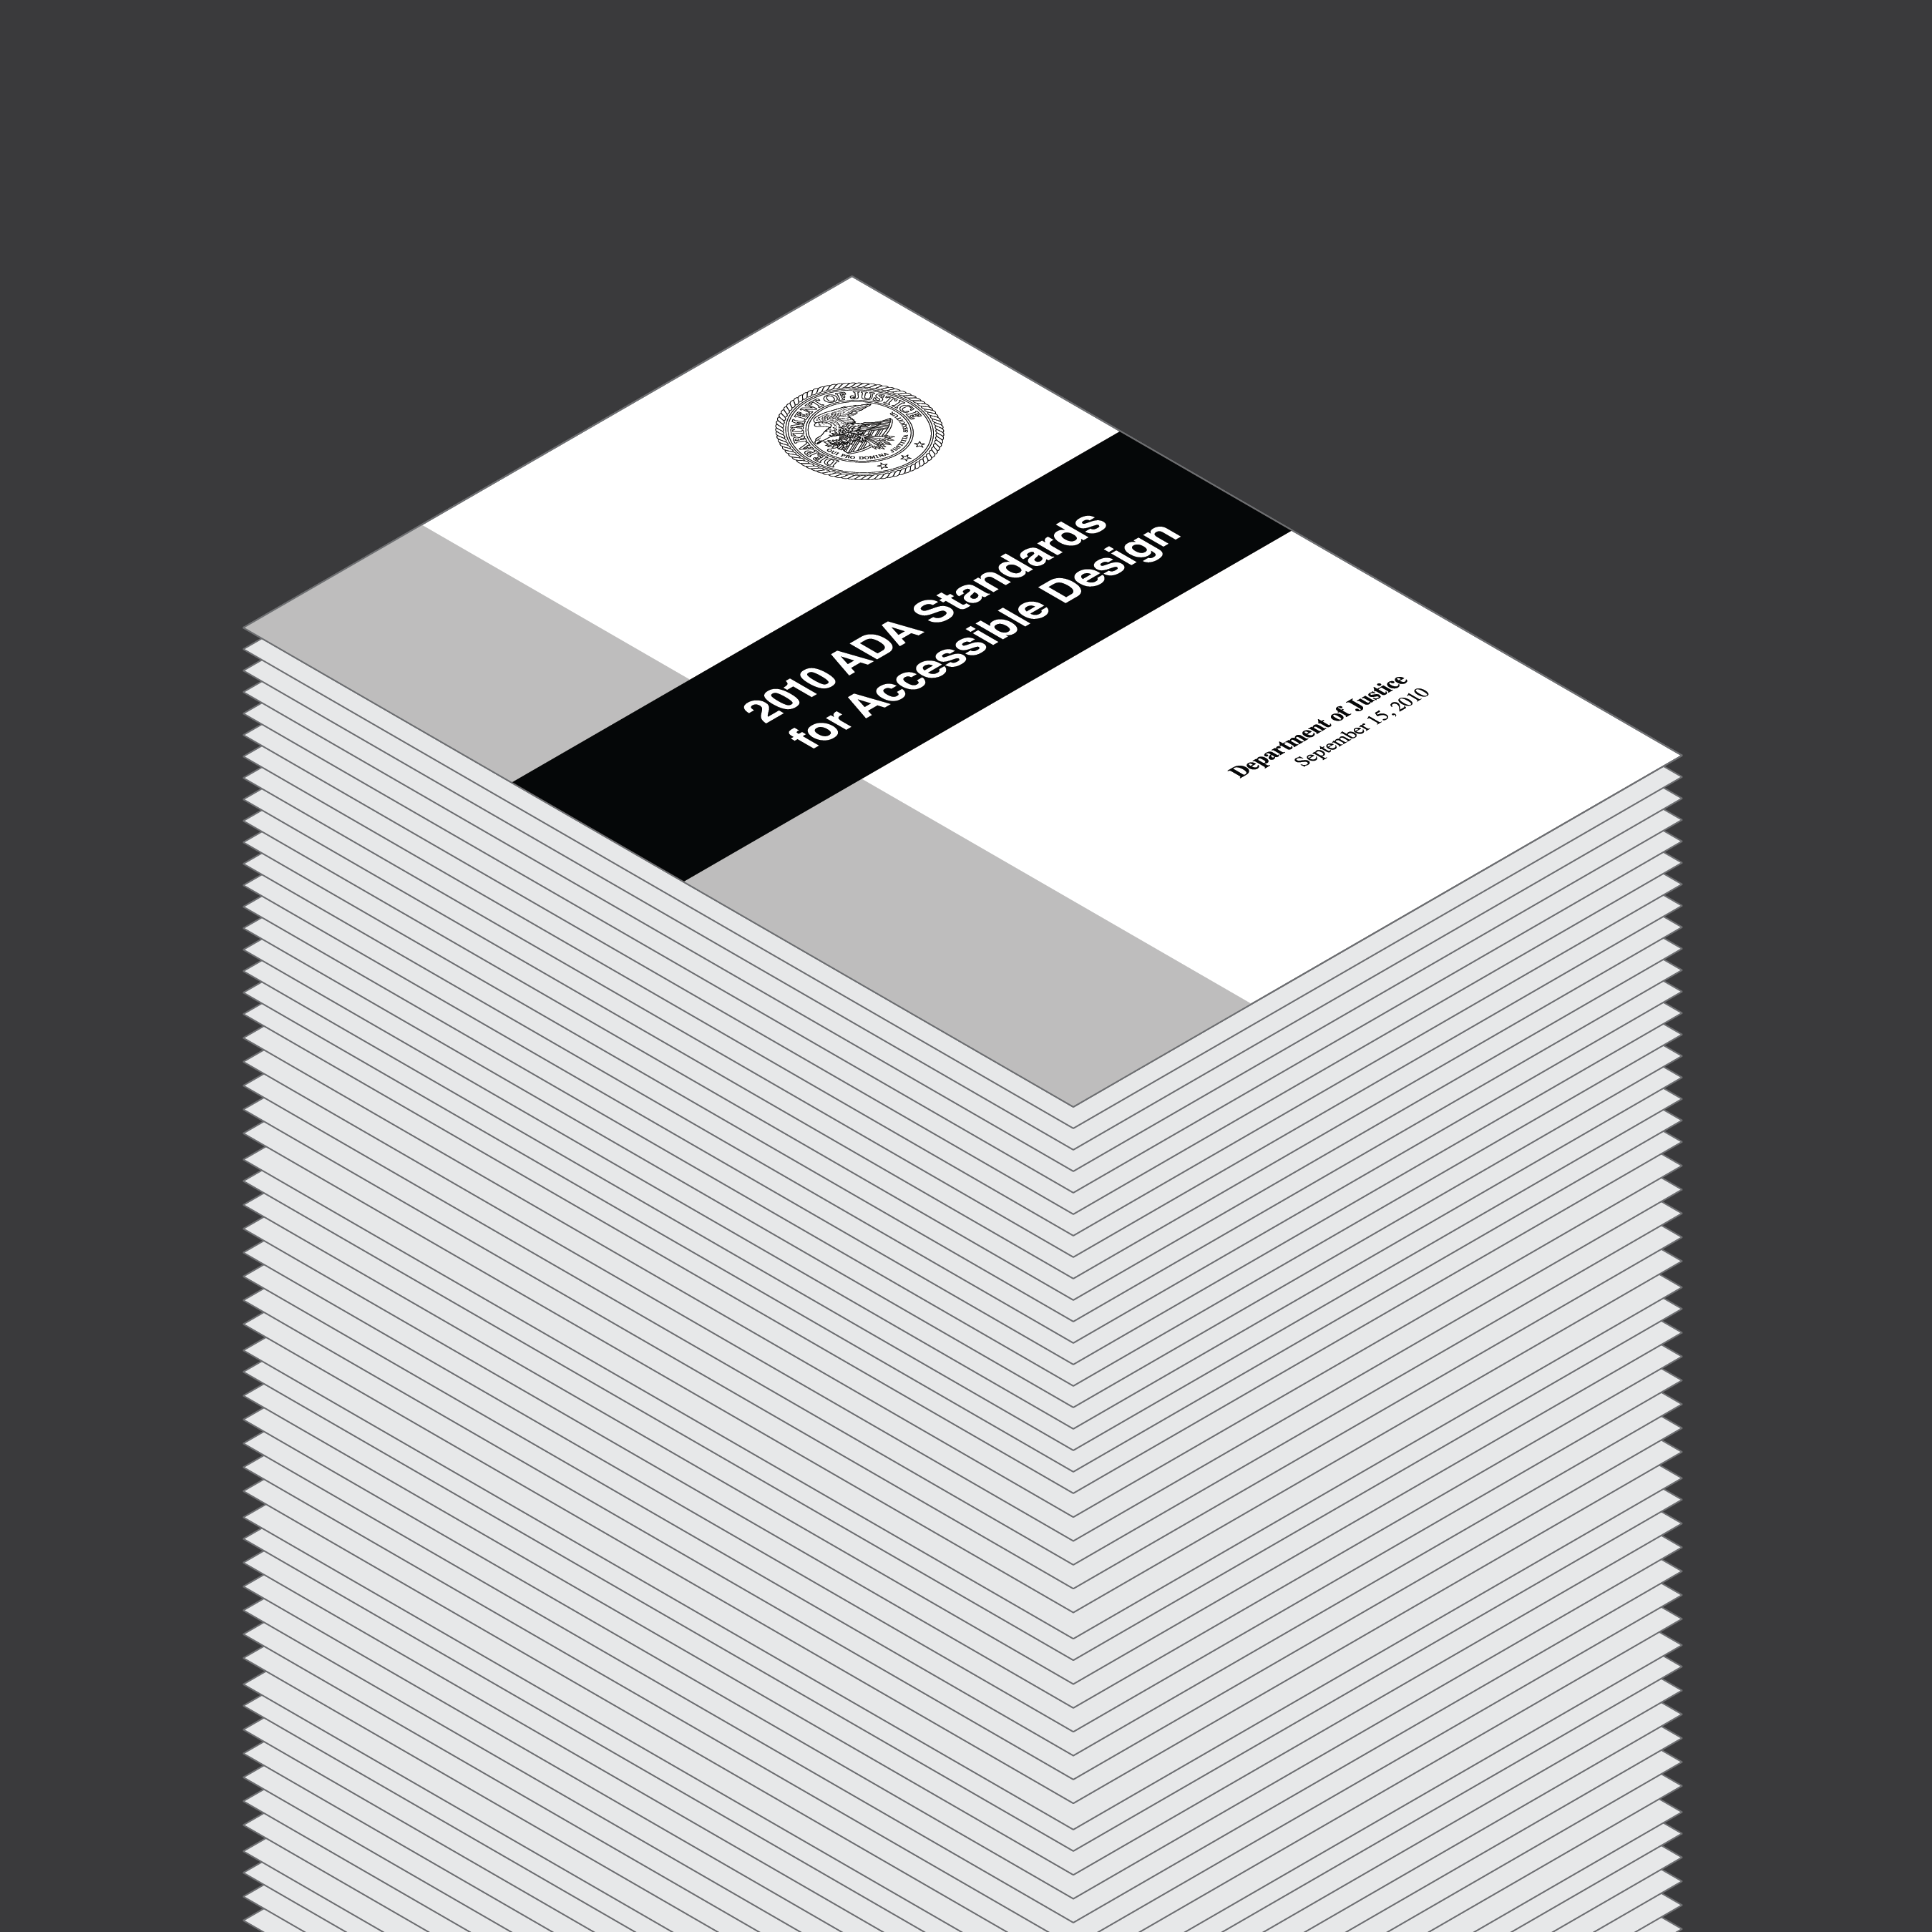 An illustration of a towering stack of papers. At top, we see the front cover for the 2010 ADA Standards for Accessible Design.